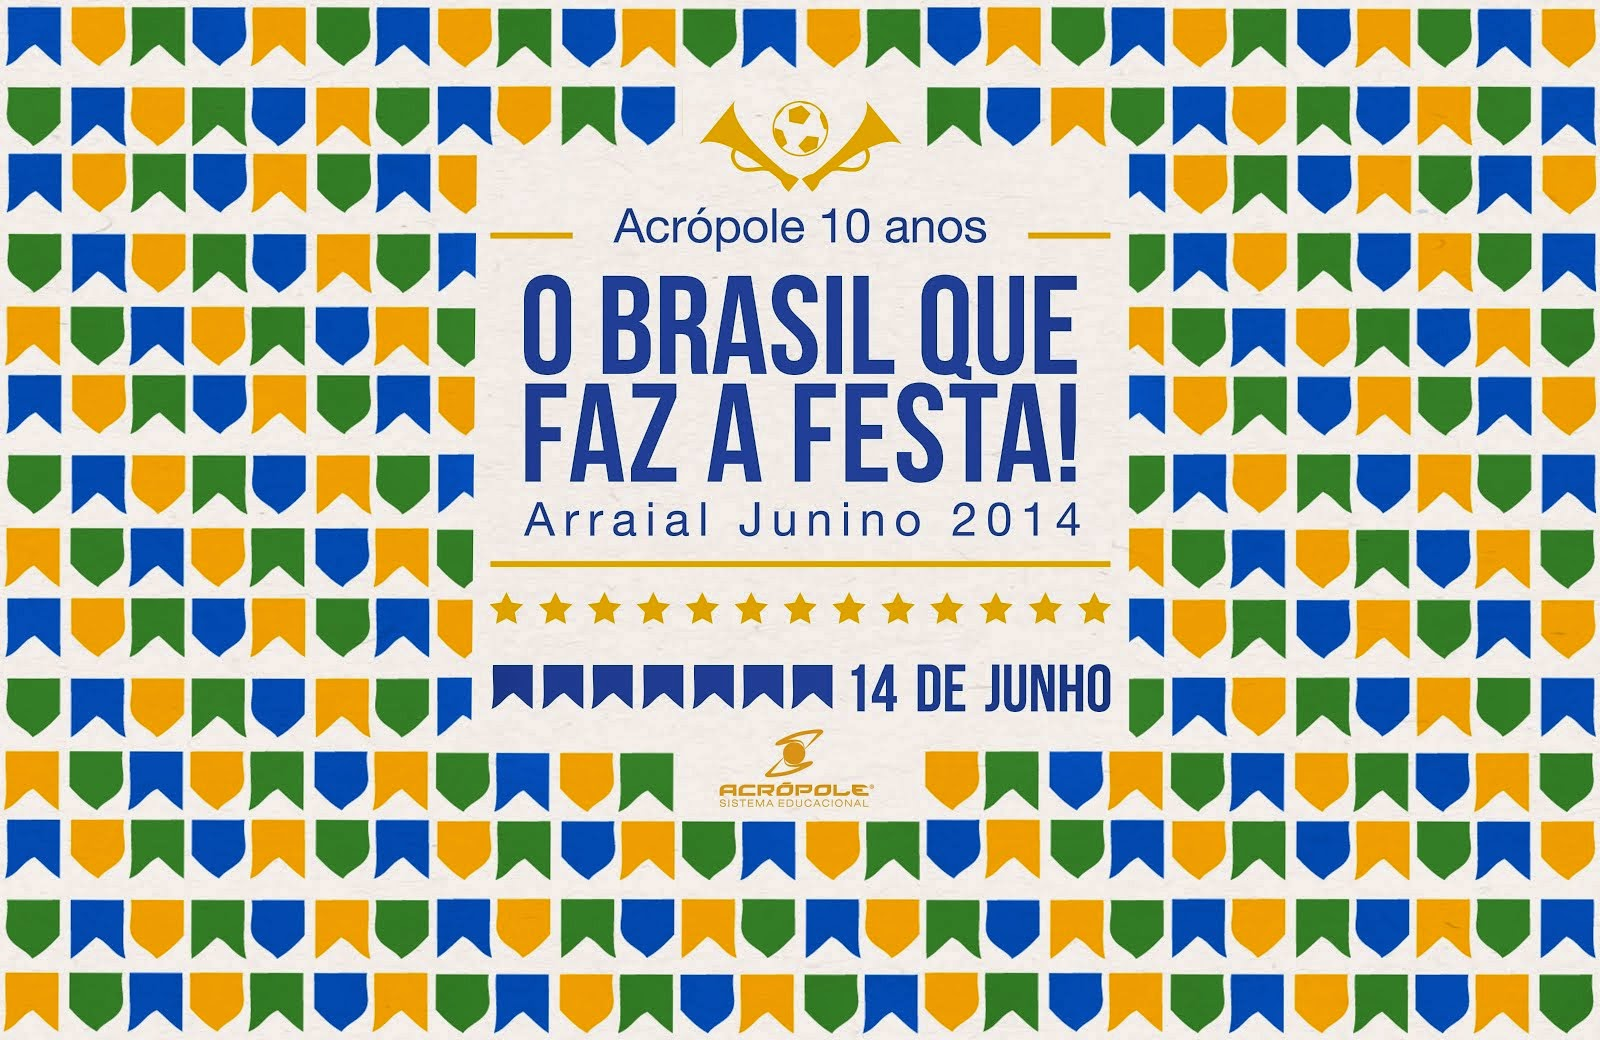 Arraial Junino